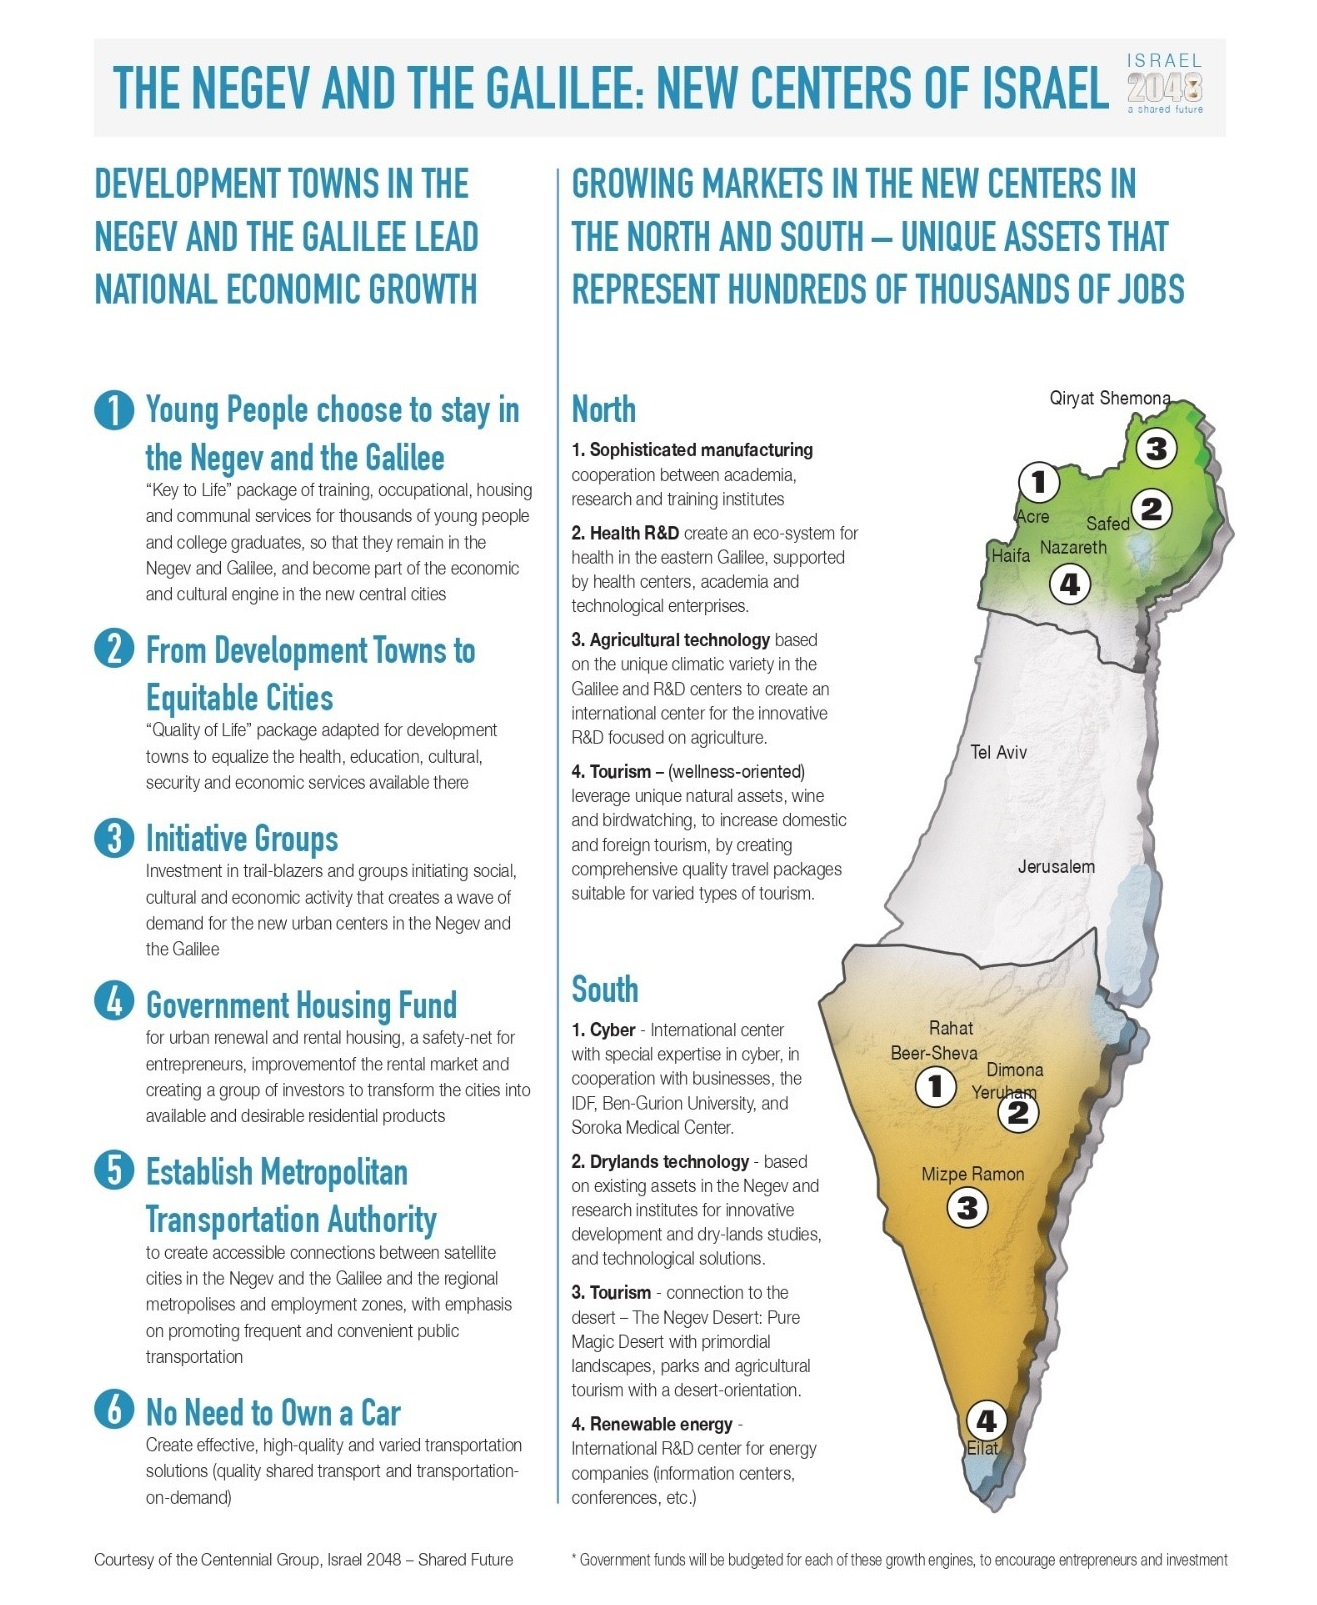 Israel's new centers: How will Israel look in 2048?